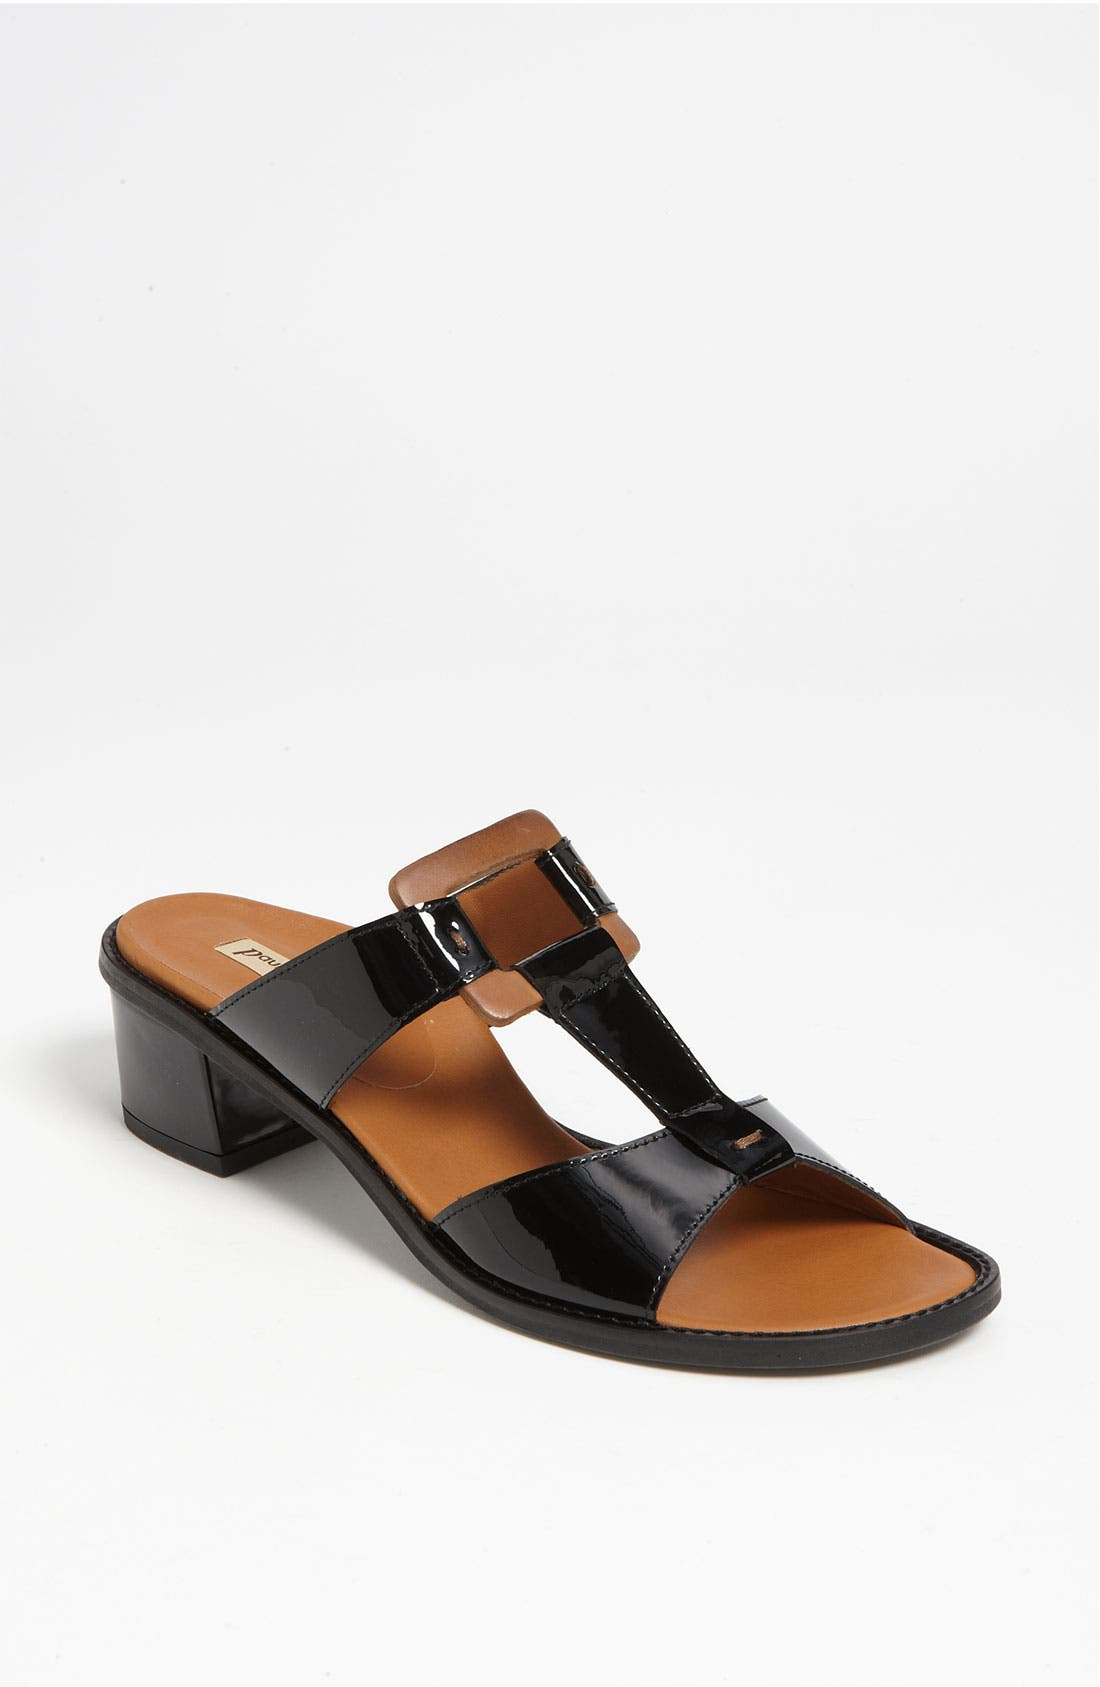 Alternate Image 1 Selected - Paul Green 'Niko' Sandal